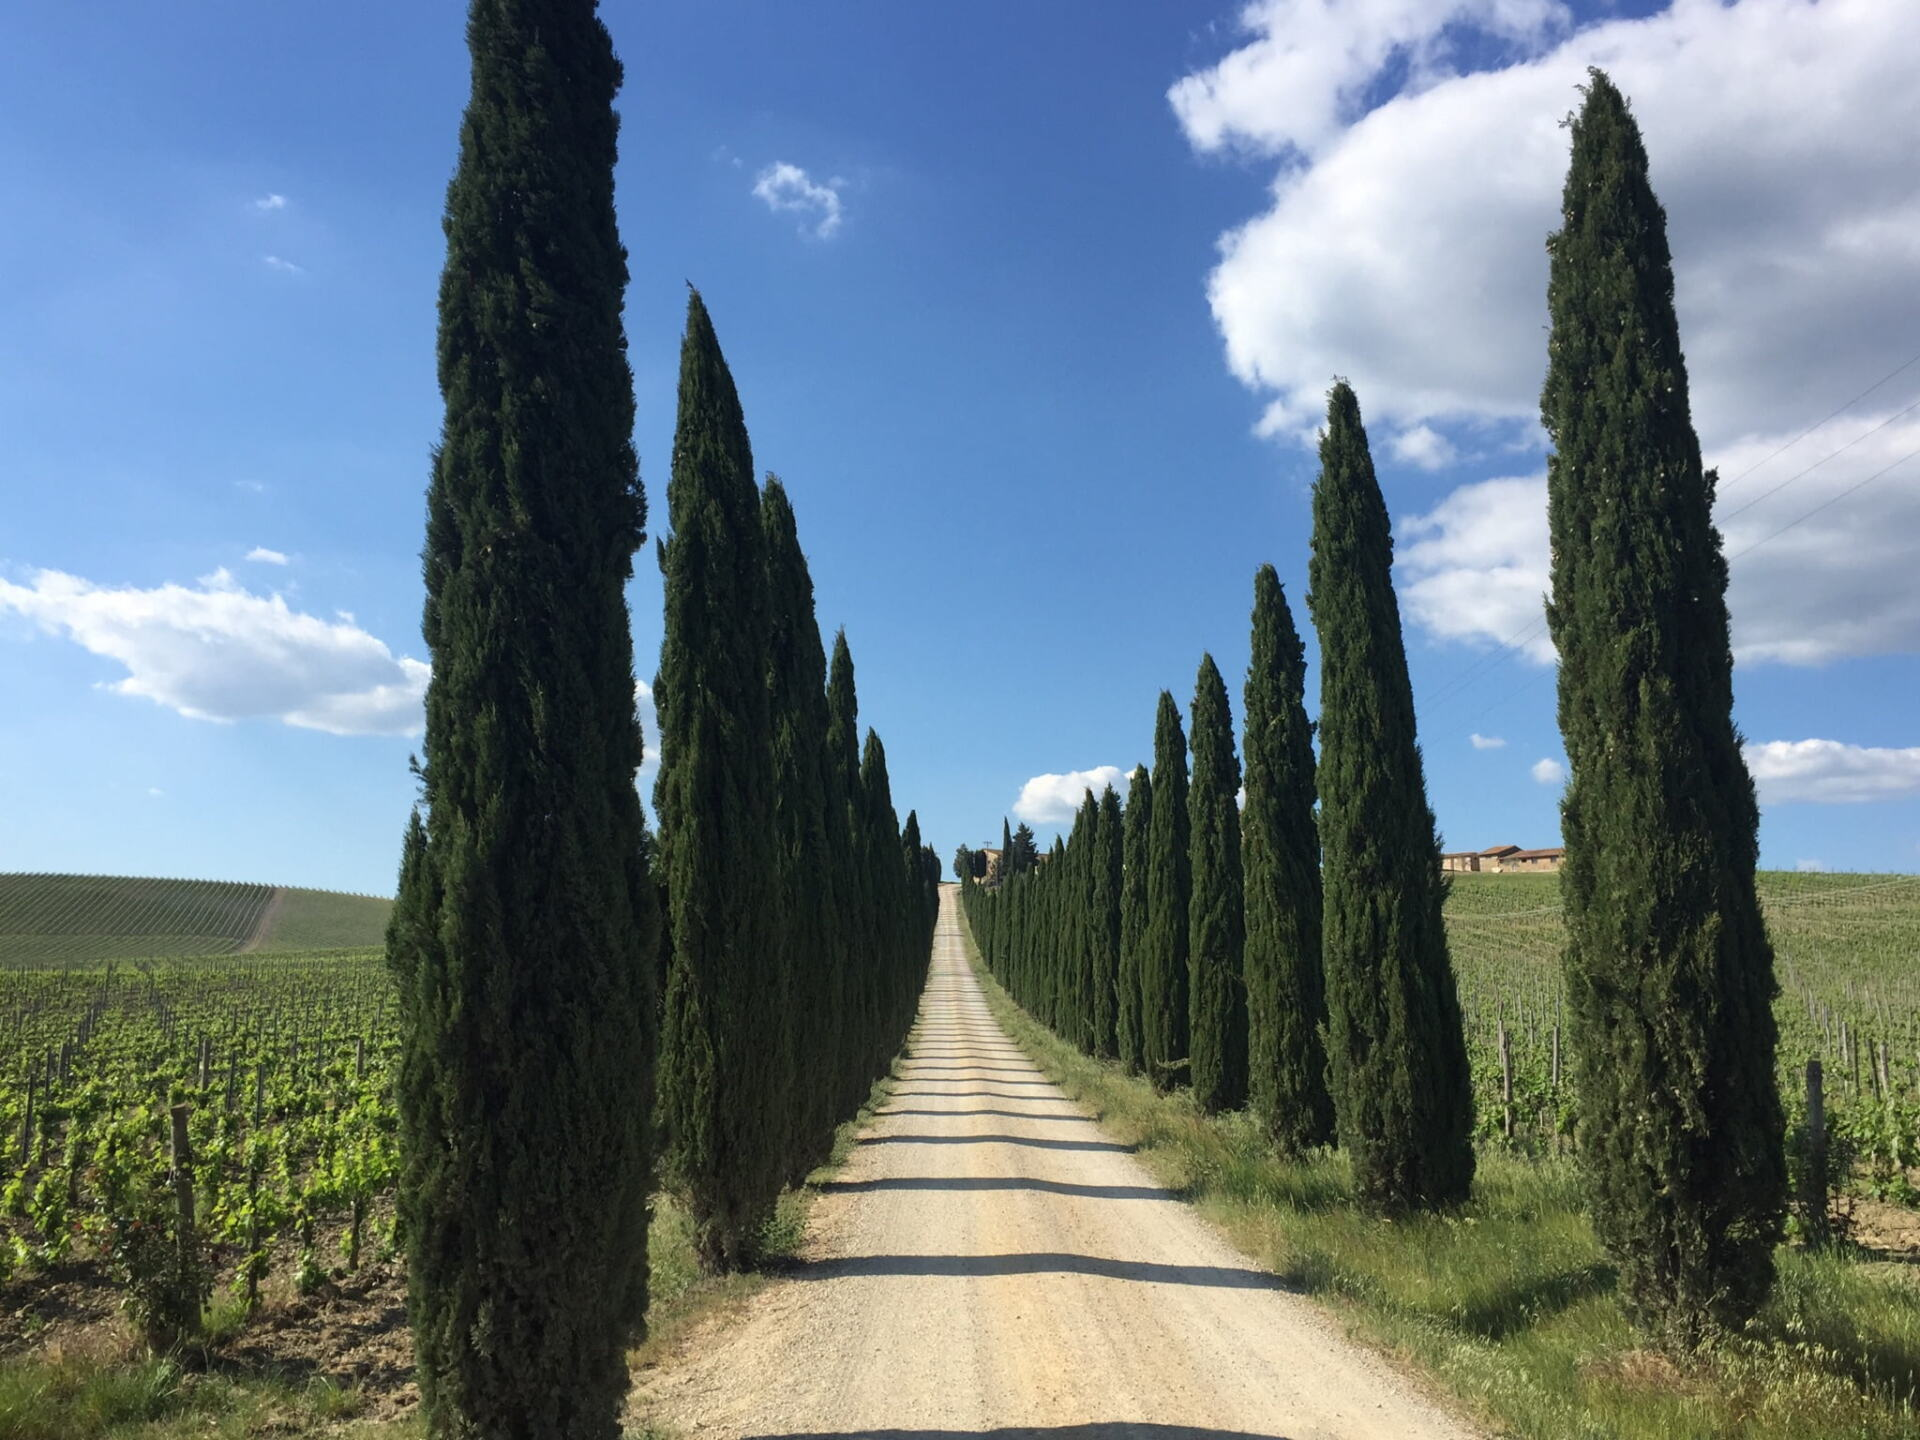 White road and Cypress Trees in Tuscany